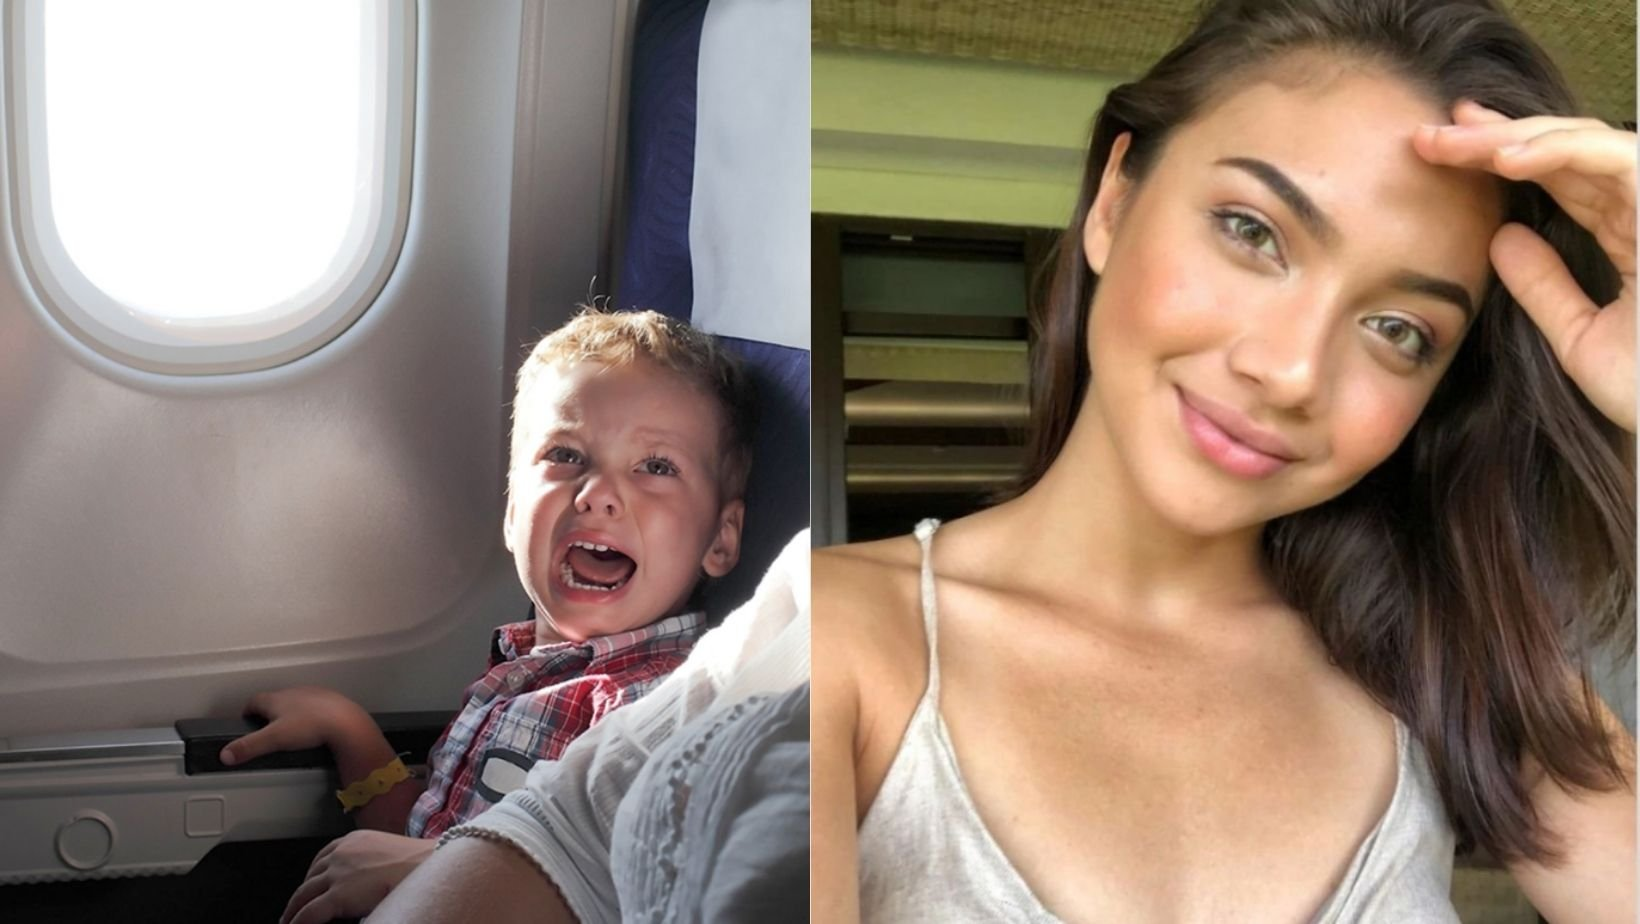 small joys thumbnail 2 7.jpg?resize=412,232 - Model Is Lambasted Online After Complaining About Sitting Next To A Crying Baby During A Flight